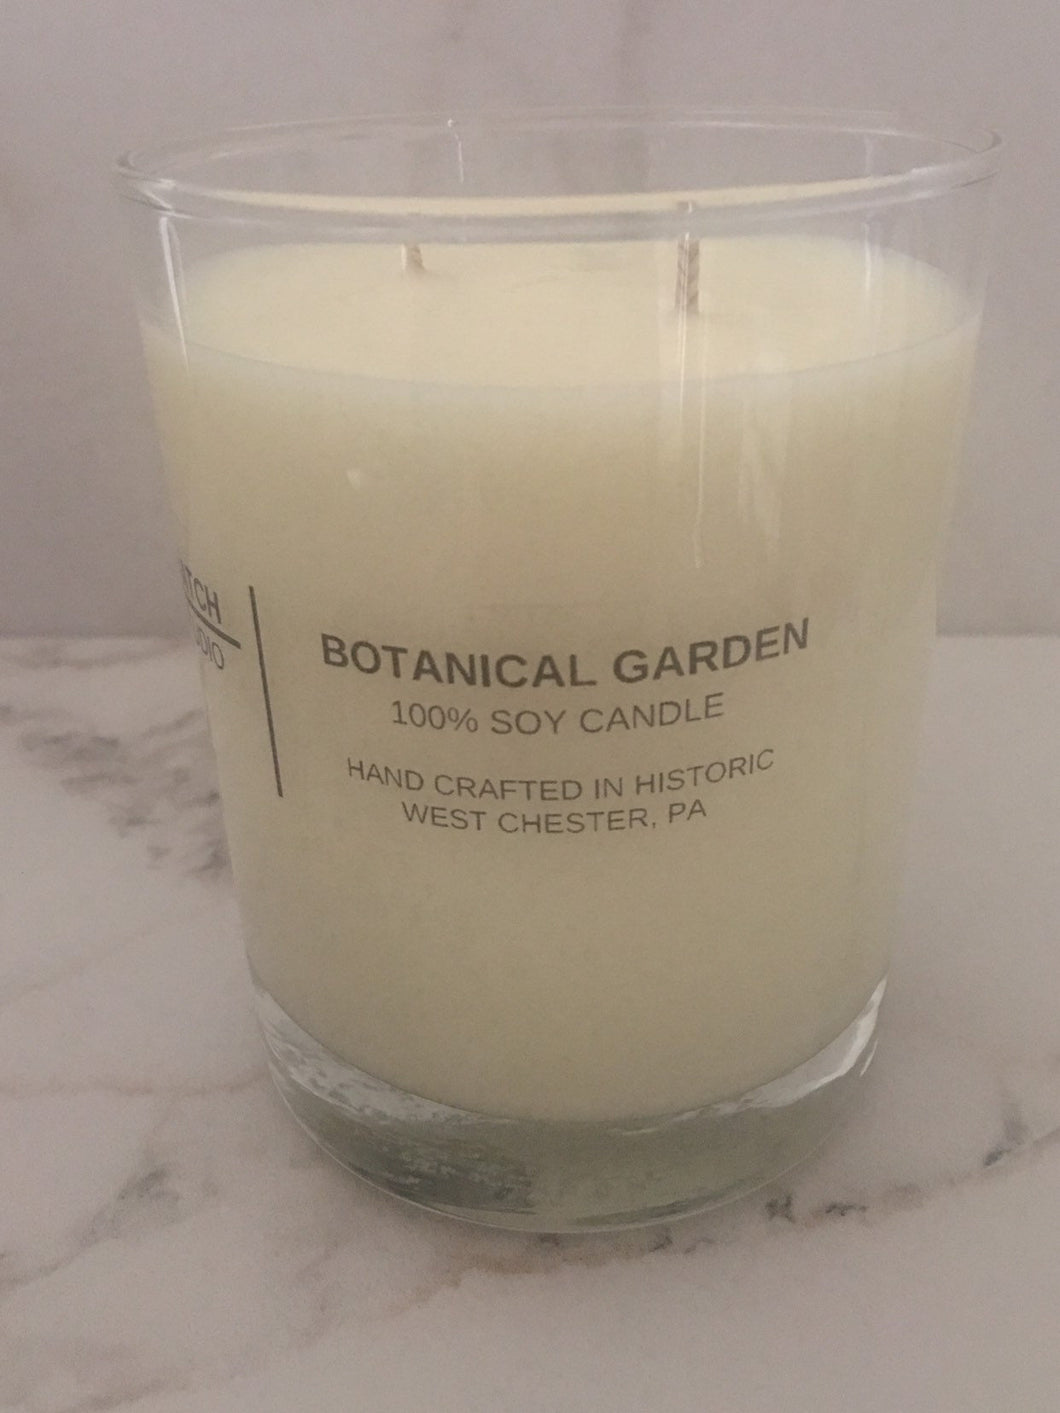 BOTANICAL GARDEN 100% soy wax candle, double wick, 10 oz., hand crafted in glass tumbler with fragrance and essential oils